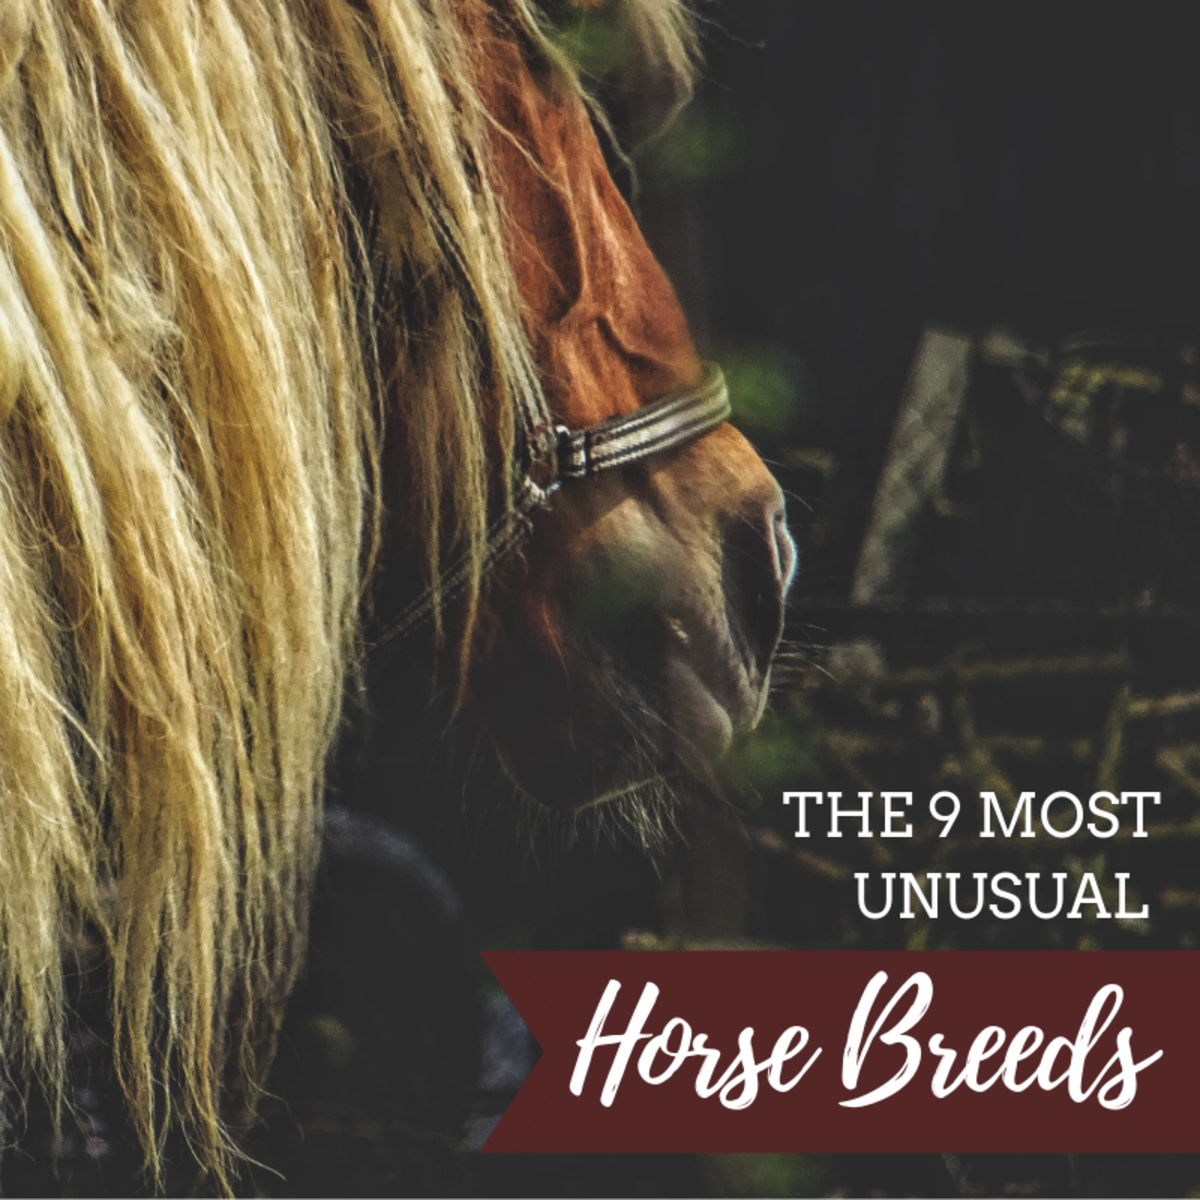 Since the domestication of horses some 6,000 years ago, many breeds and varieties have developed—these 9 are among the most unique.